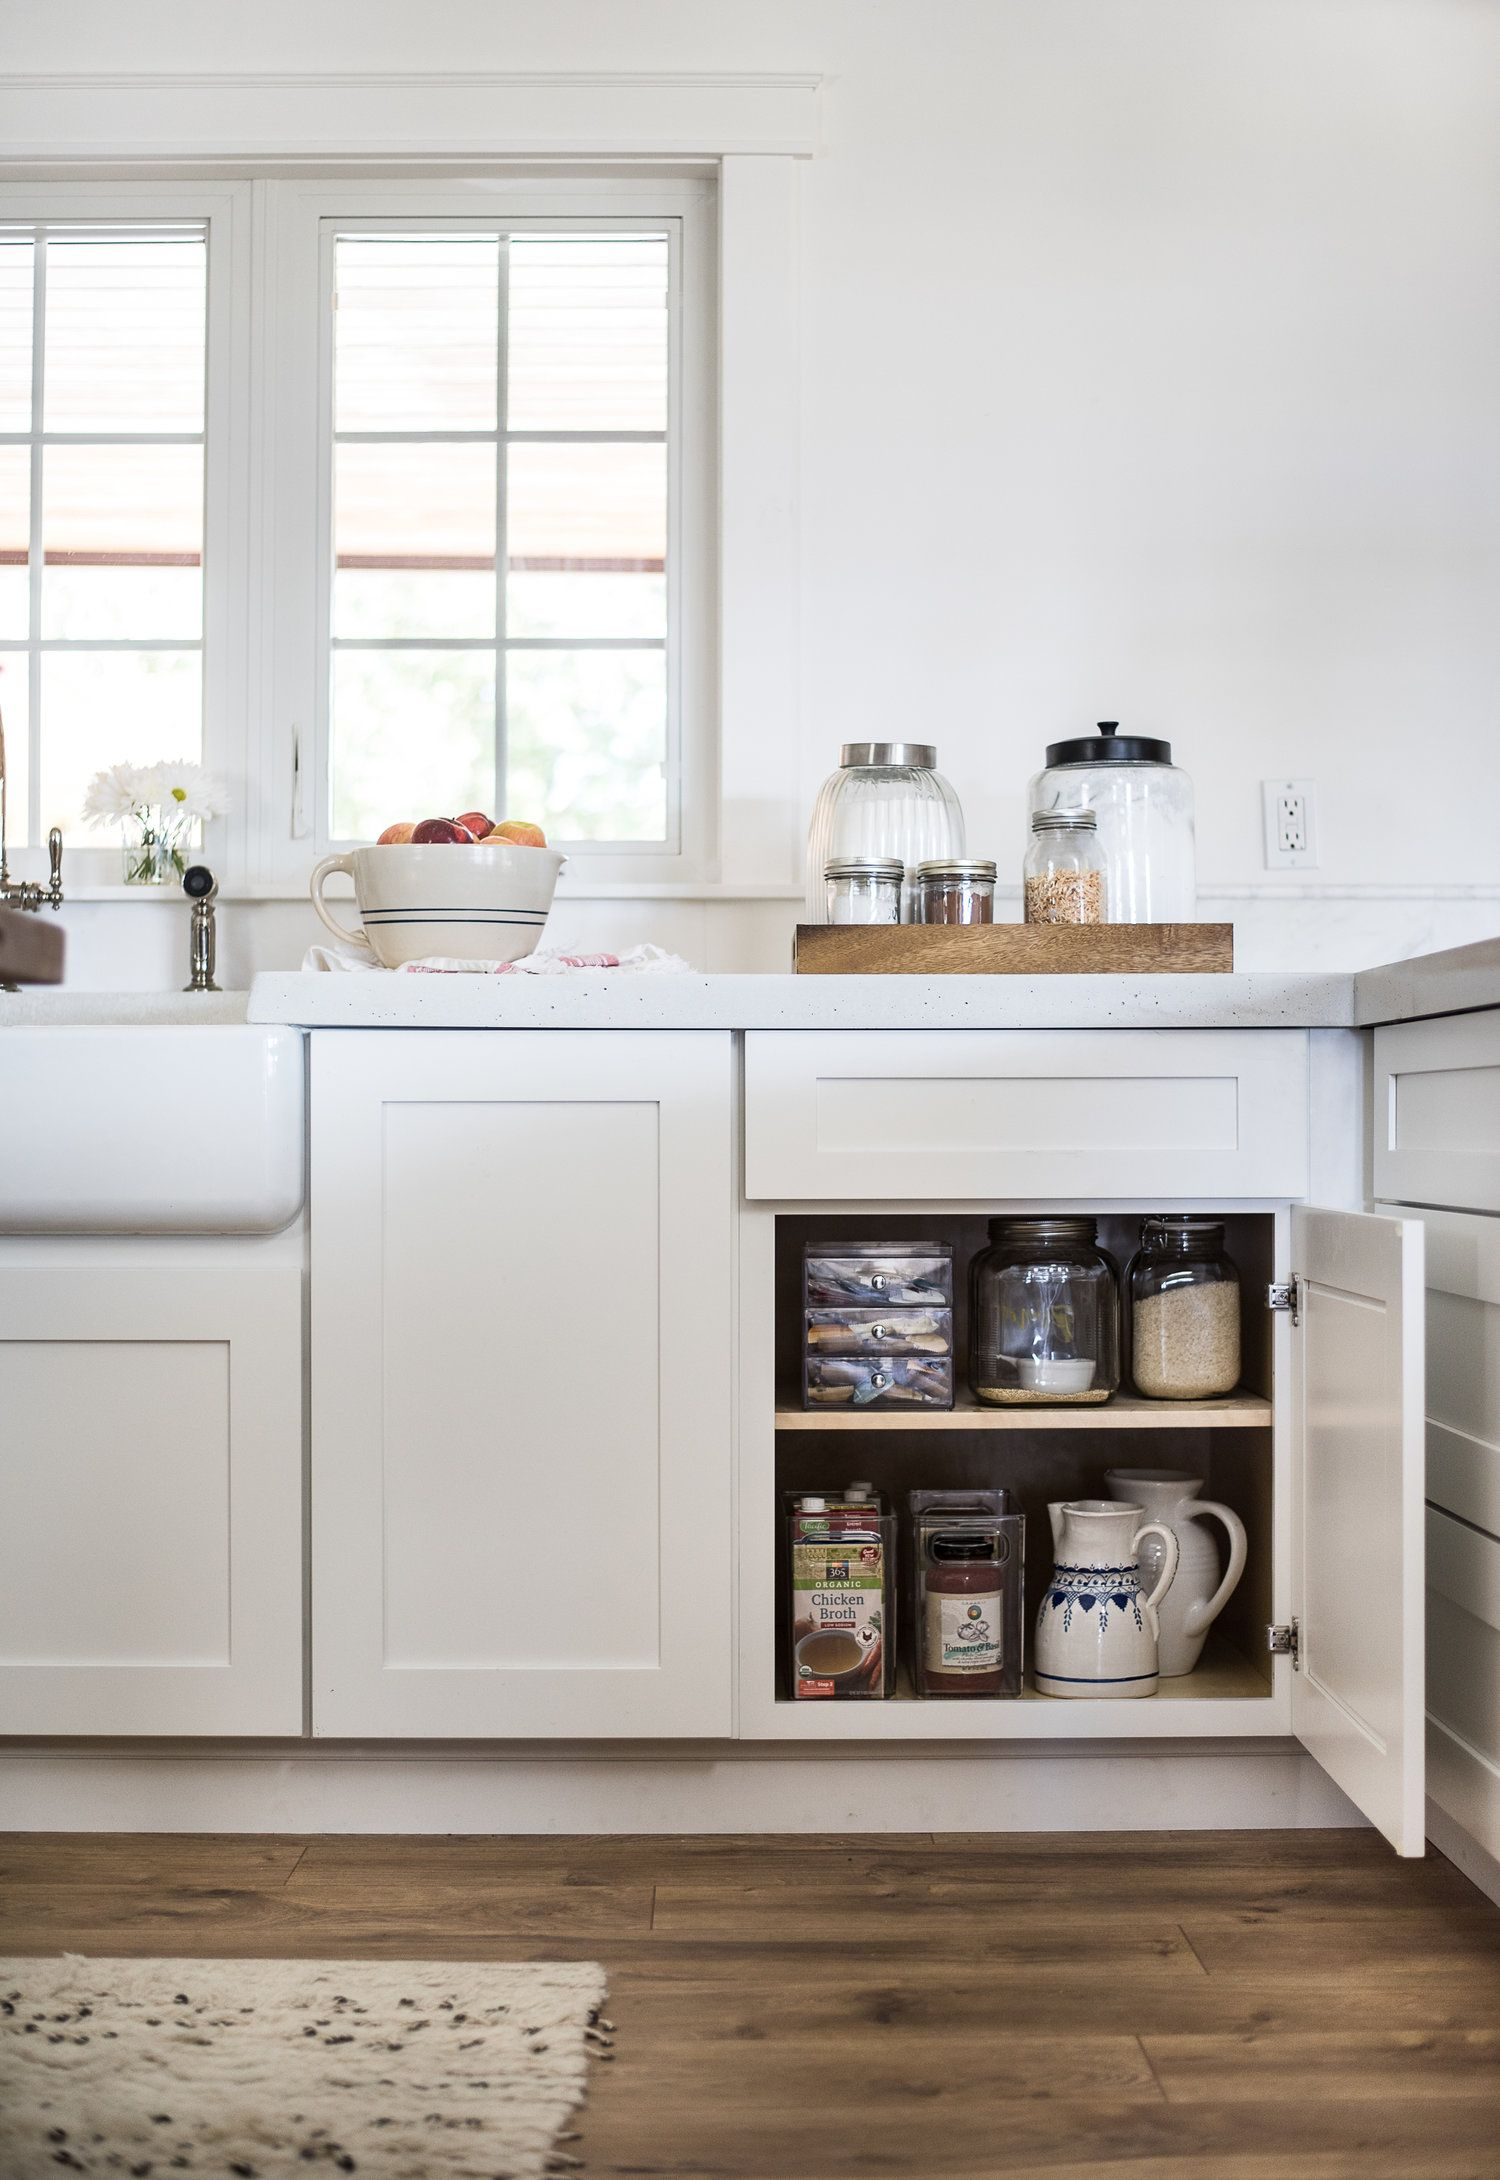 Kitchen Organization Solutions With The Home Depot  Organizations Alluring Design My Kitchen Home Depot Inspiration